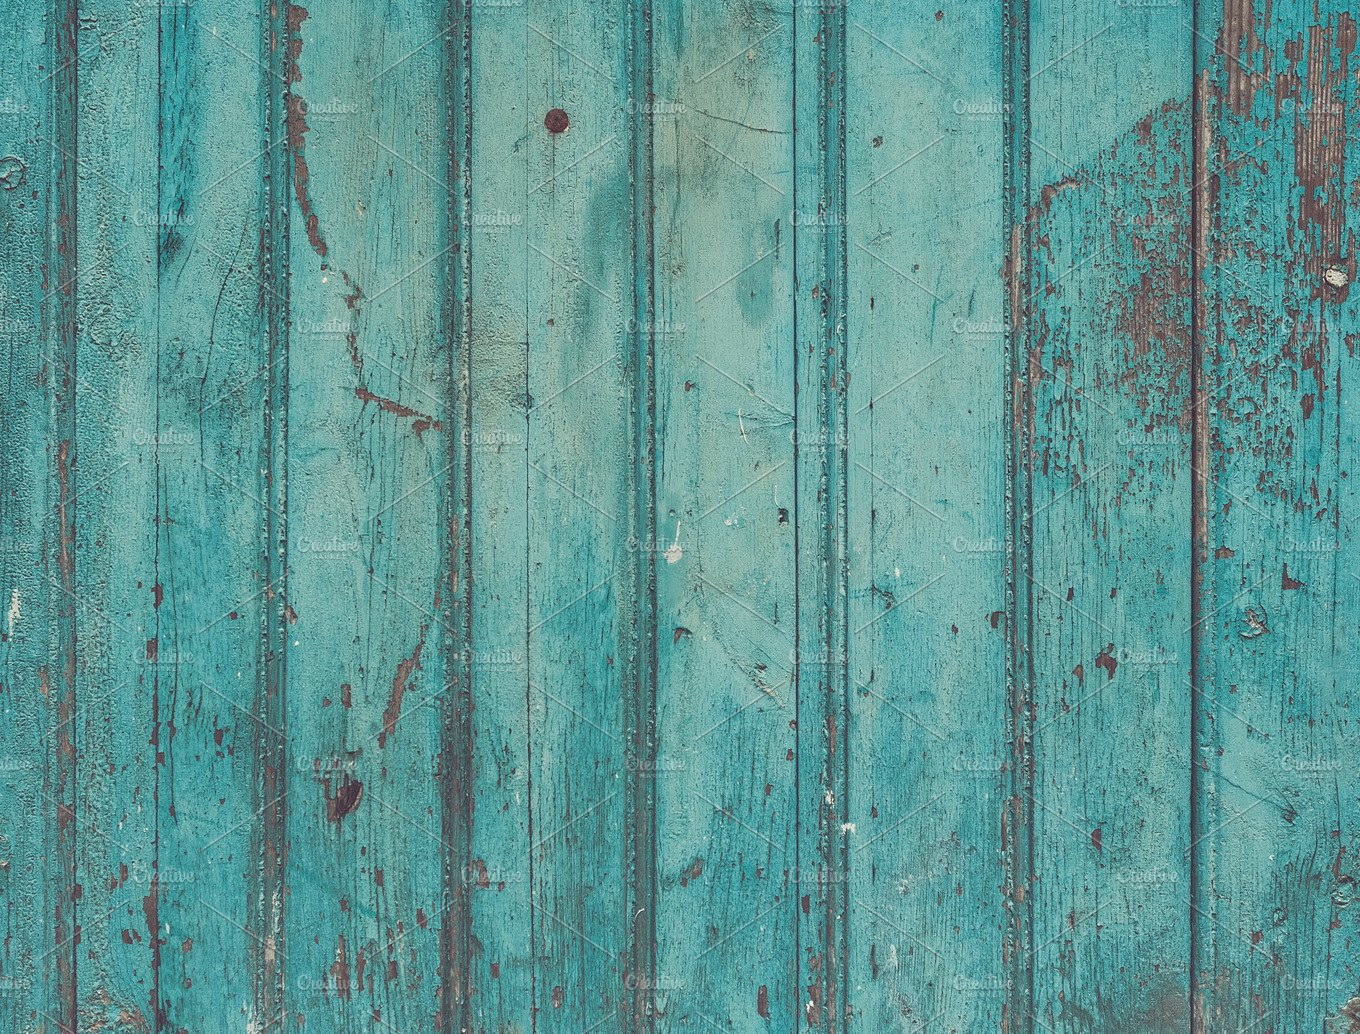 Old Painted Turquoise Wooden Texture Abstract Photos